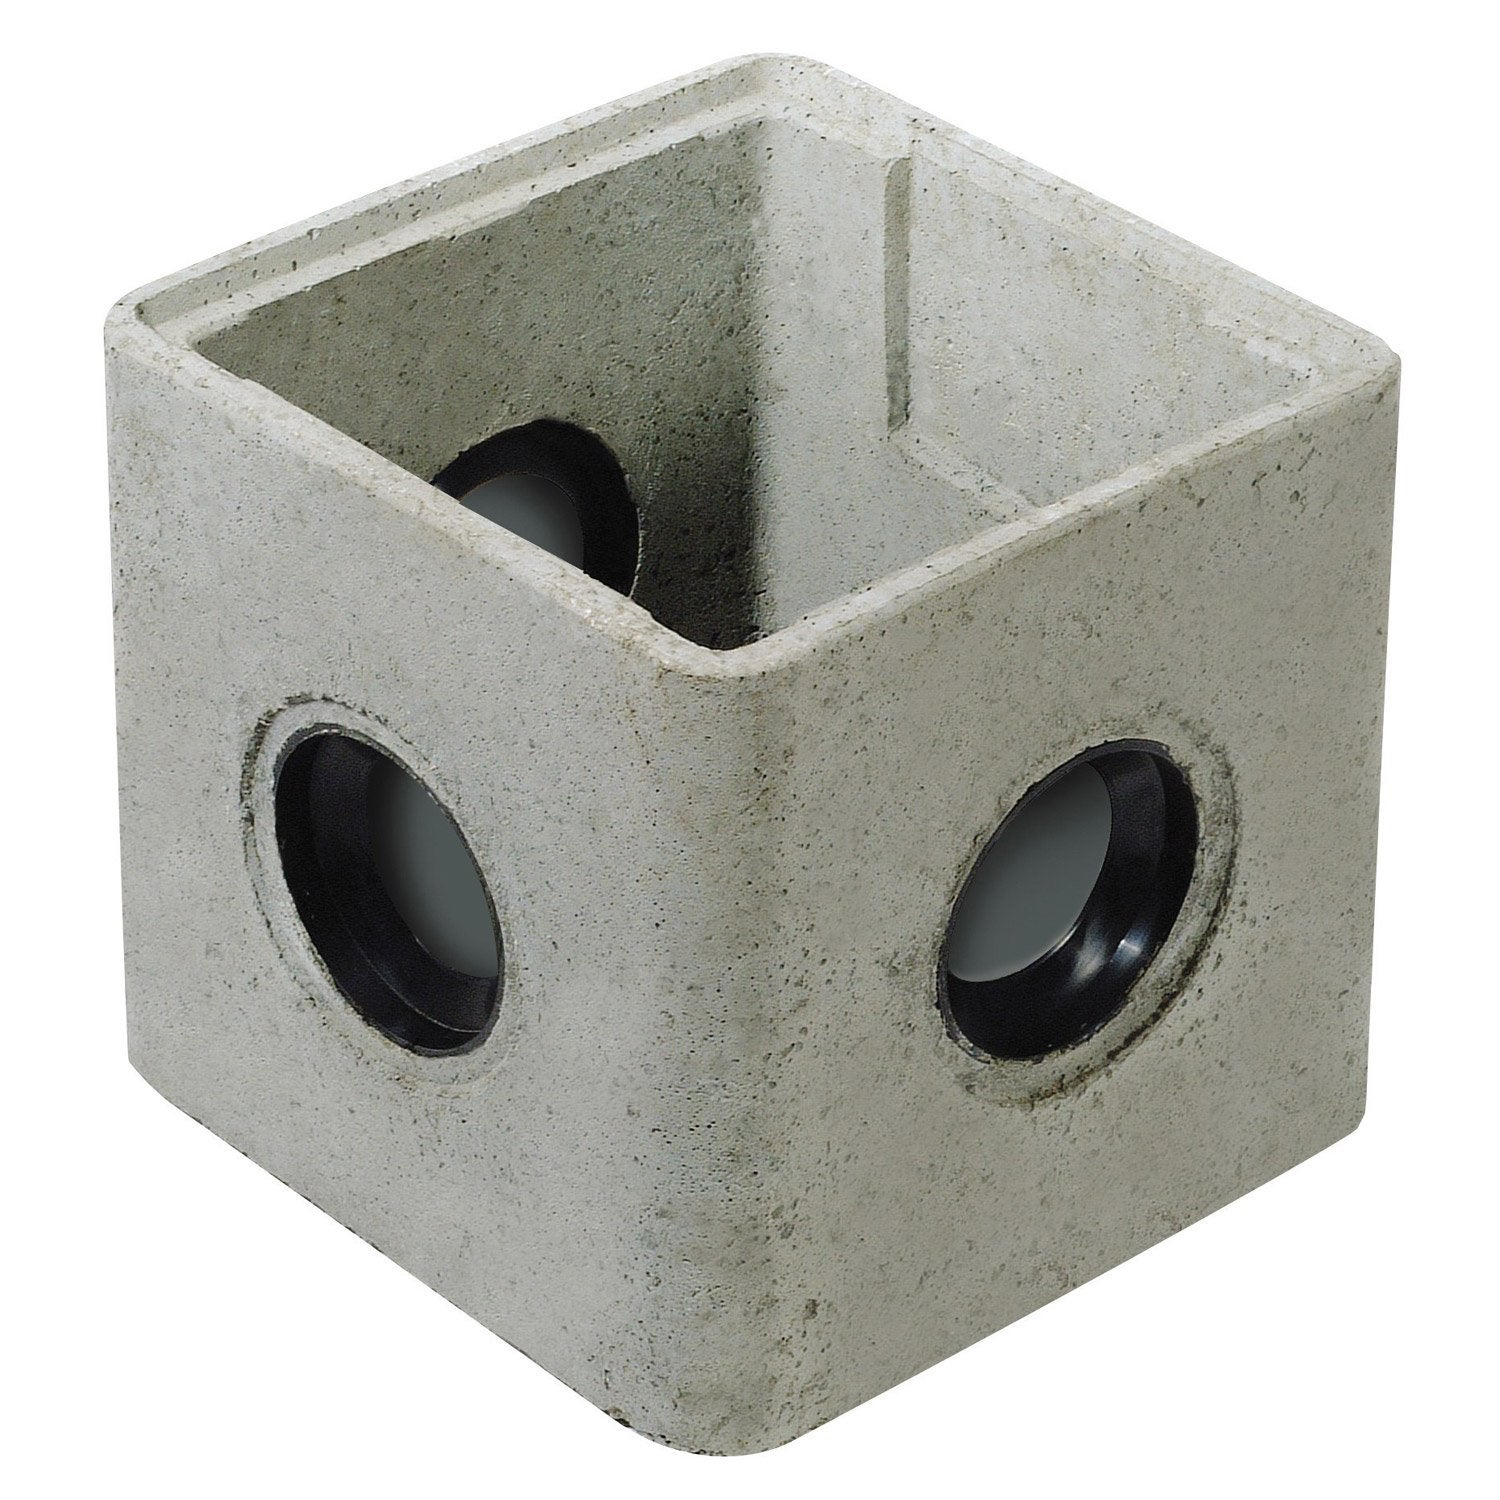 Regard joints incorpor s rmj25 b ton x mm for Rehausse beton 50x50 castorama